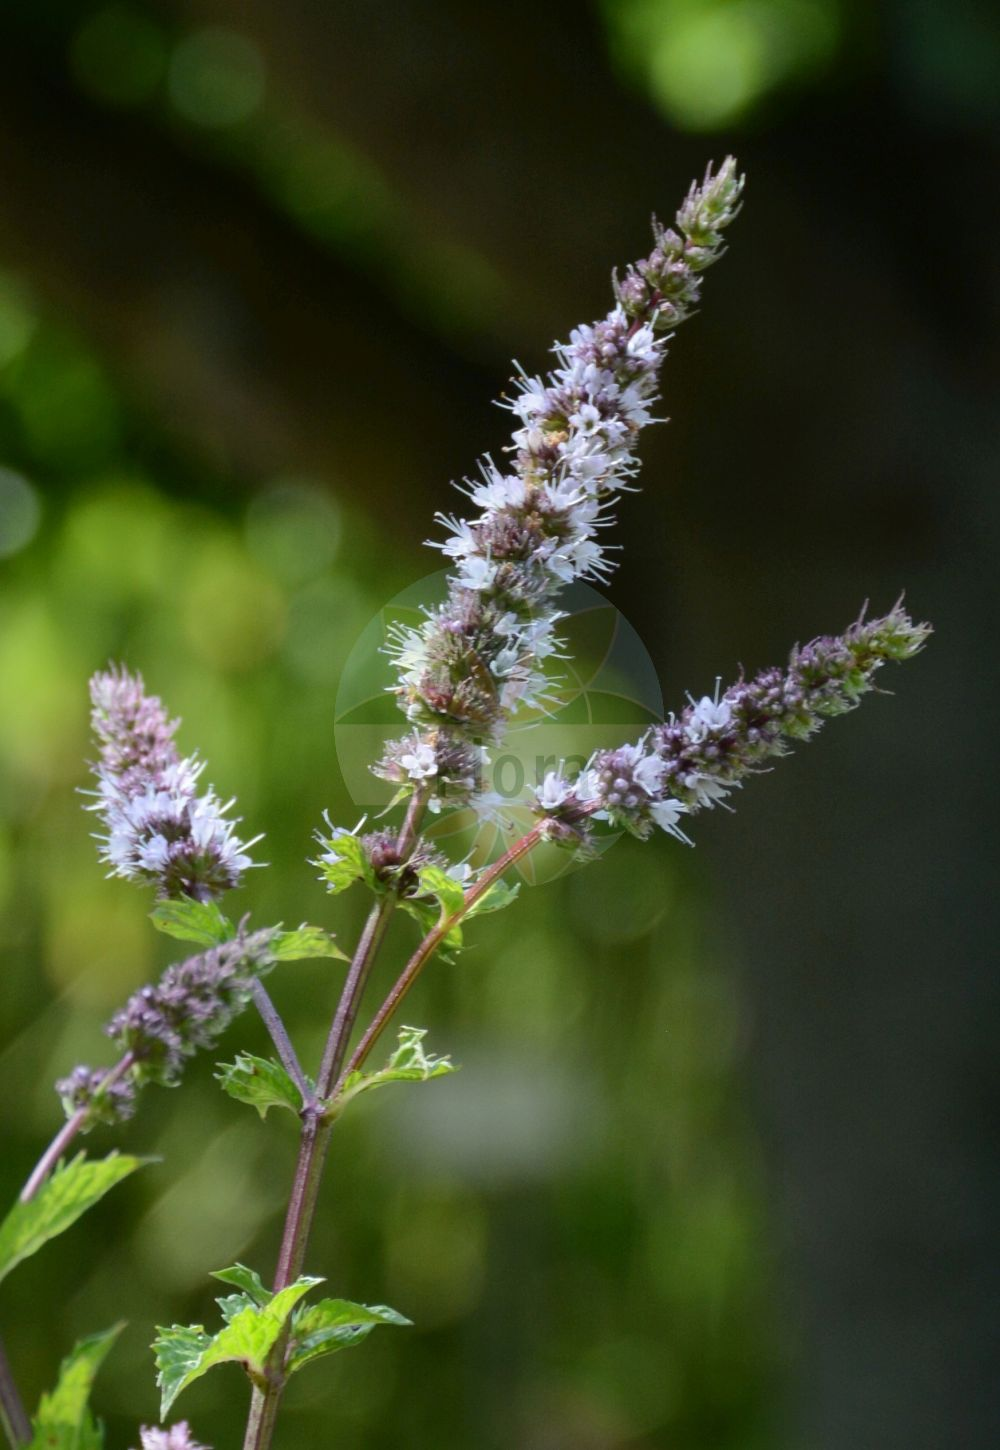 Foto von Mentha spicata (Ähren-Minze - Spear Mint). Das Foto wurde in Wuerzburg, Bayern, Deutschland aufgenommen. ---- Photo of Mentha spicata (Ähren-Minze - Spear Mint).The picture was taken in Wuerzburg, Bayern, Germany.(Mentha spicata,Ähren-Minze,Spear Mint,Round-leaved Mint,Mentha,Minze,Mint,Lamiaceae,Lippenbluetengewaechse;Lippenbluetler,Nettle family)